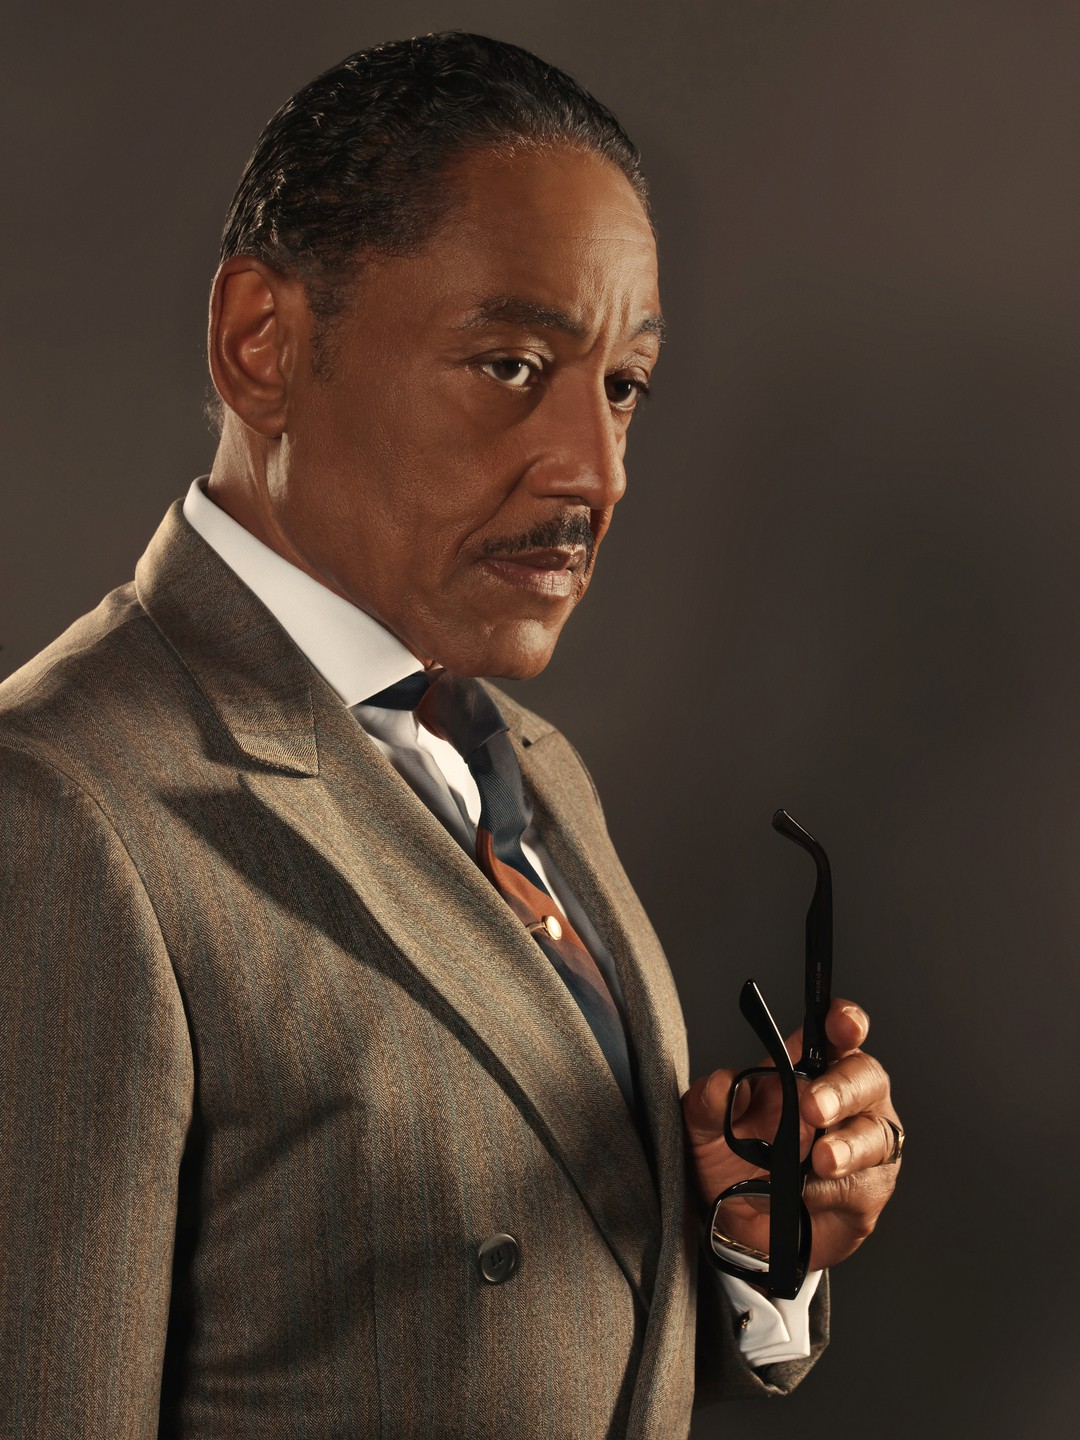 Godfather of Harlem - Staffel 1 - Bild 3 von 36